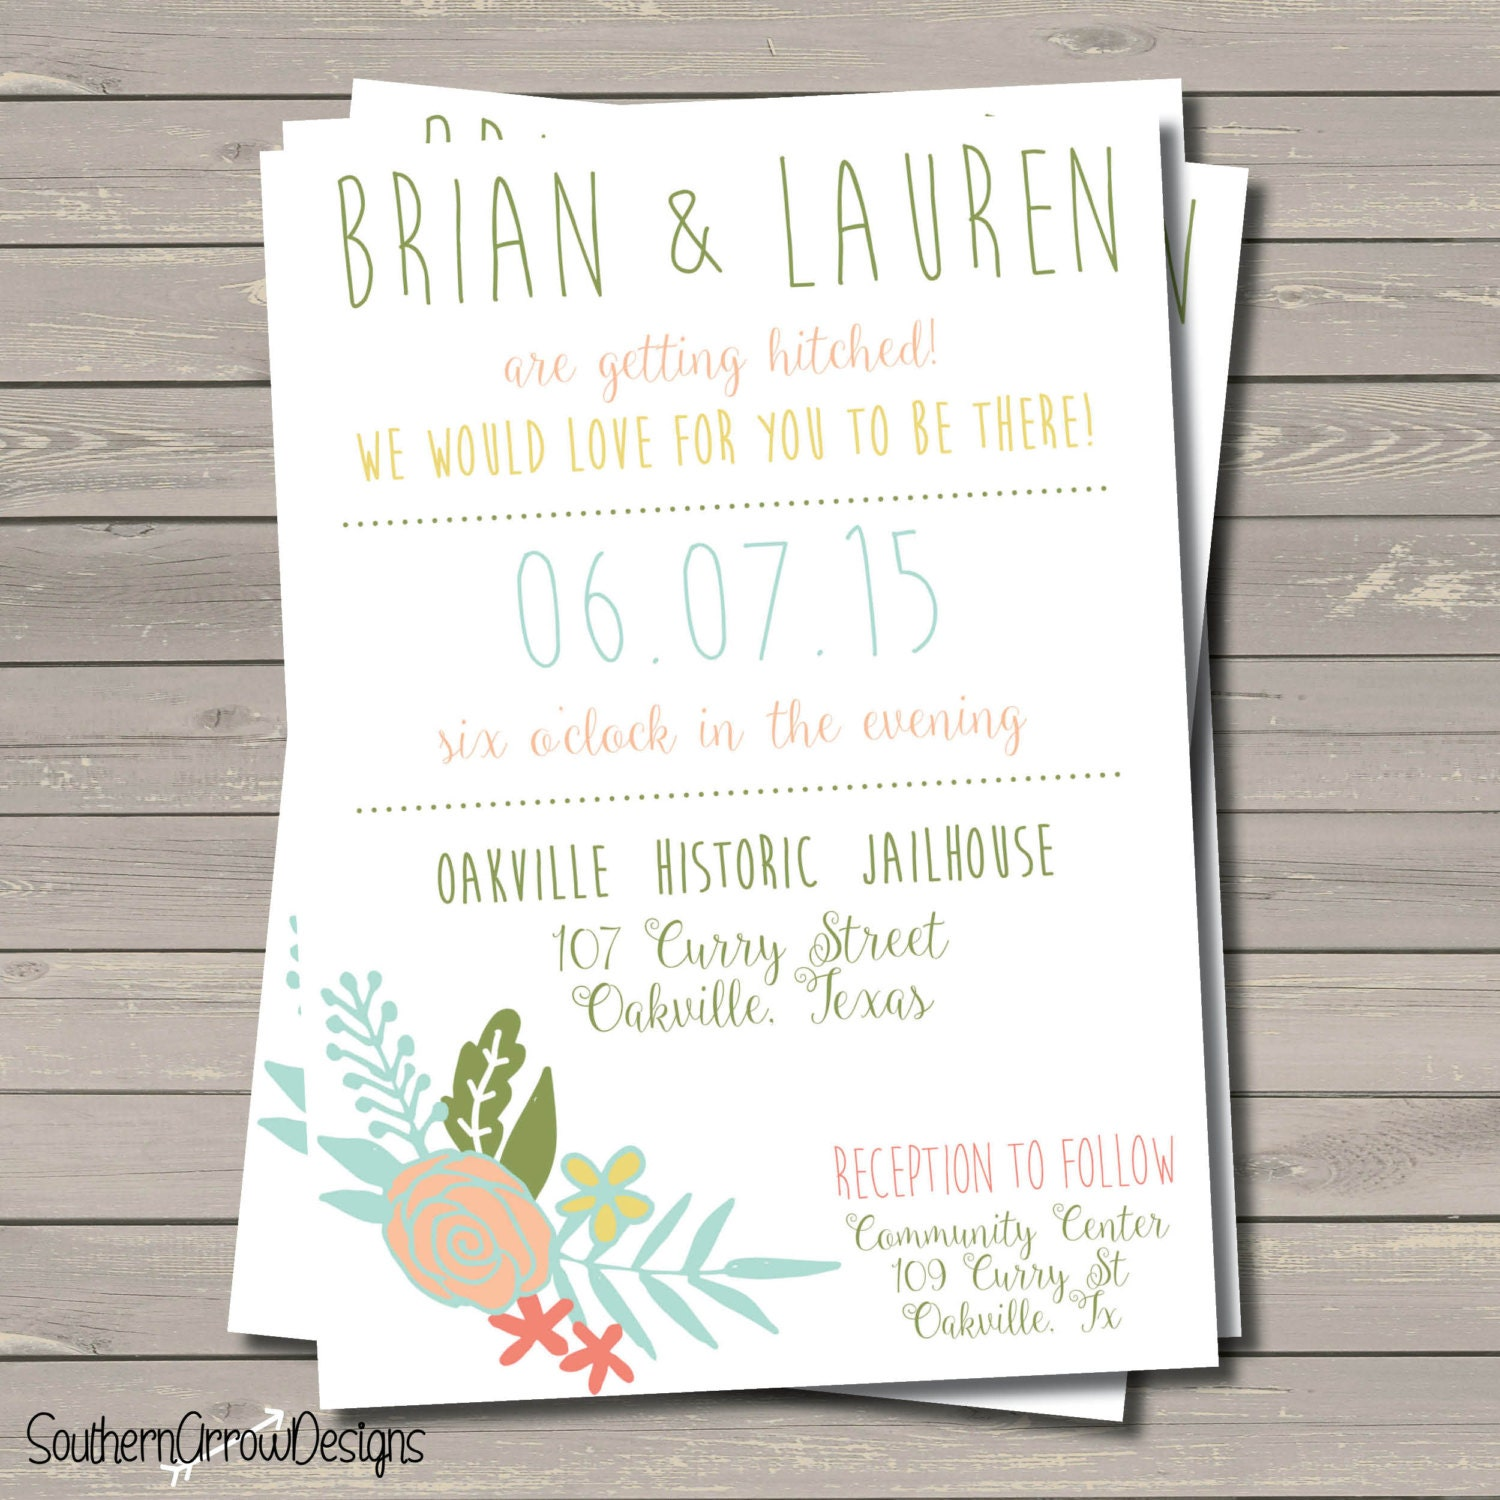 Shabby Wedding Invitations is great invitation design